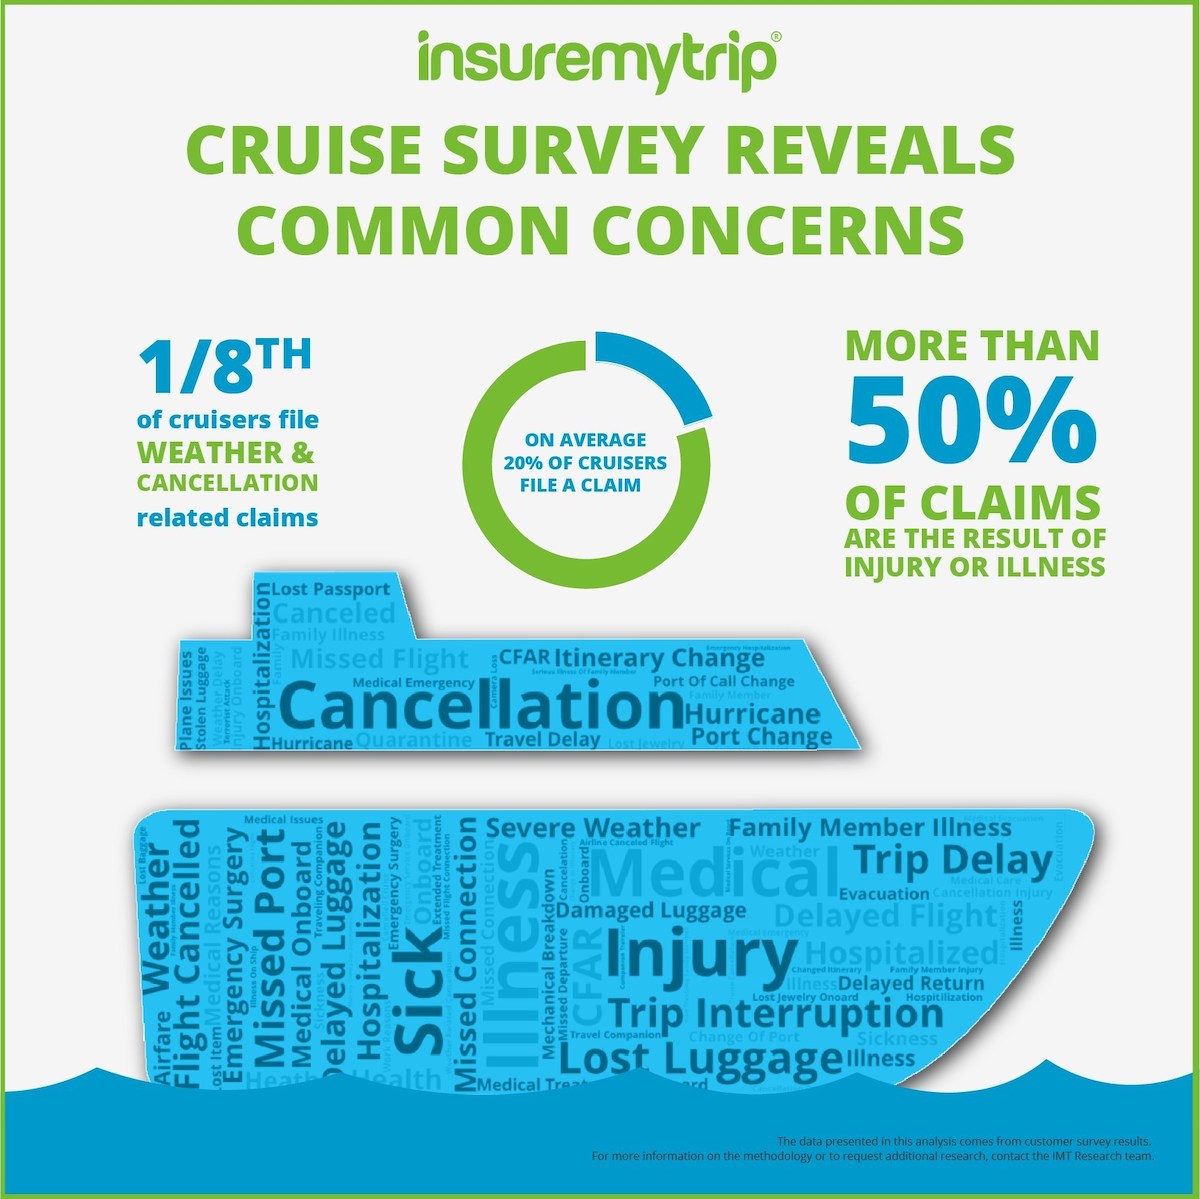 Top Concerns Among Cruise Vacationers 2020